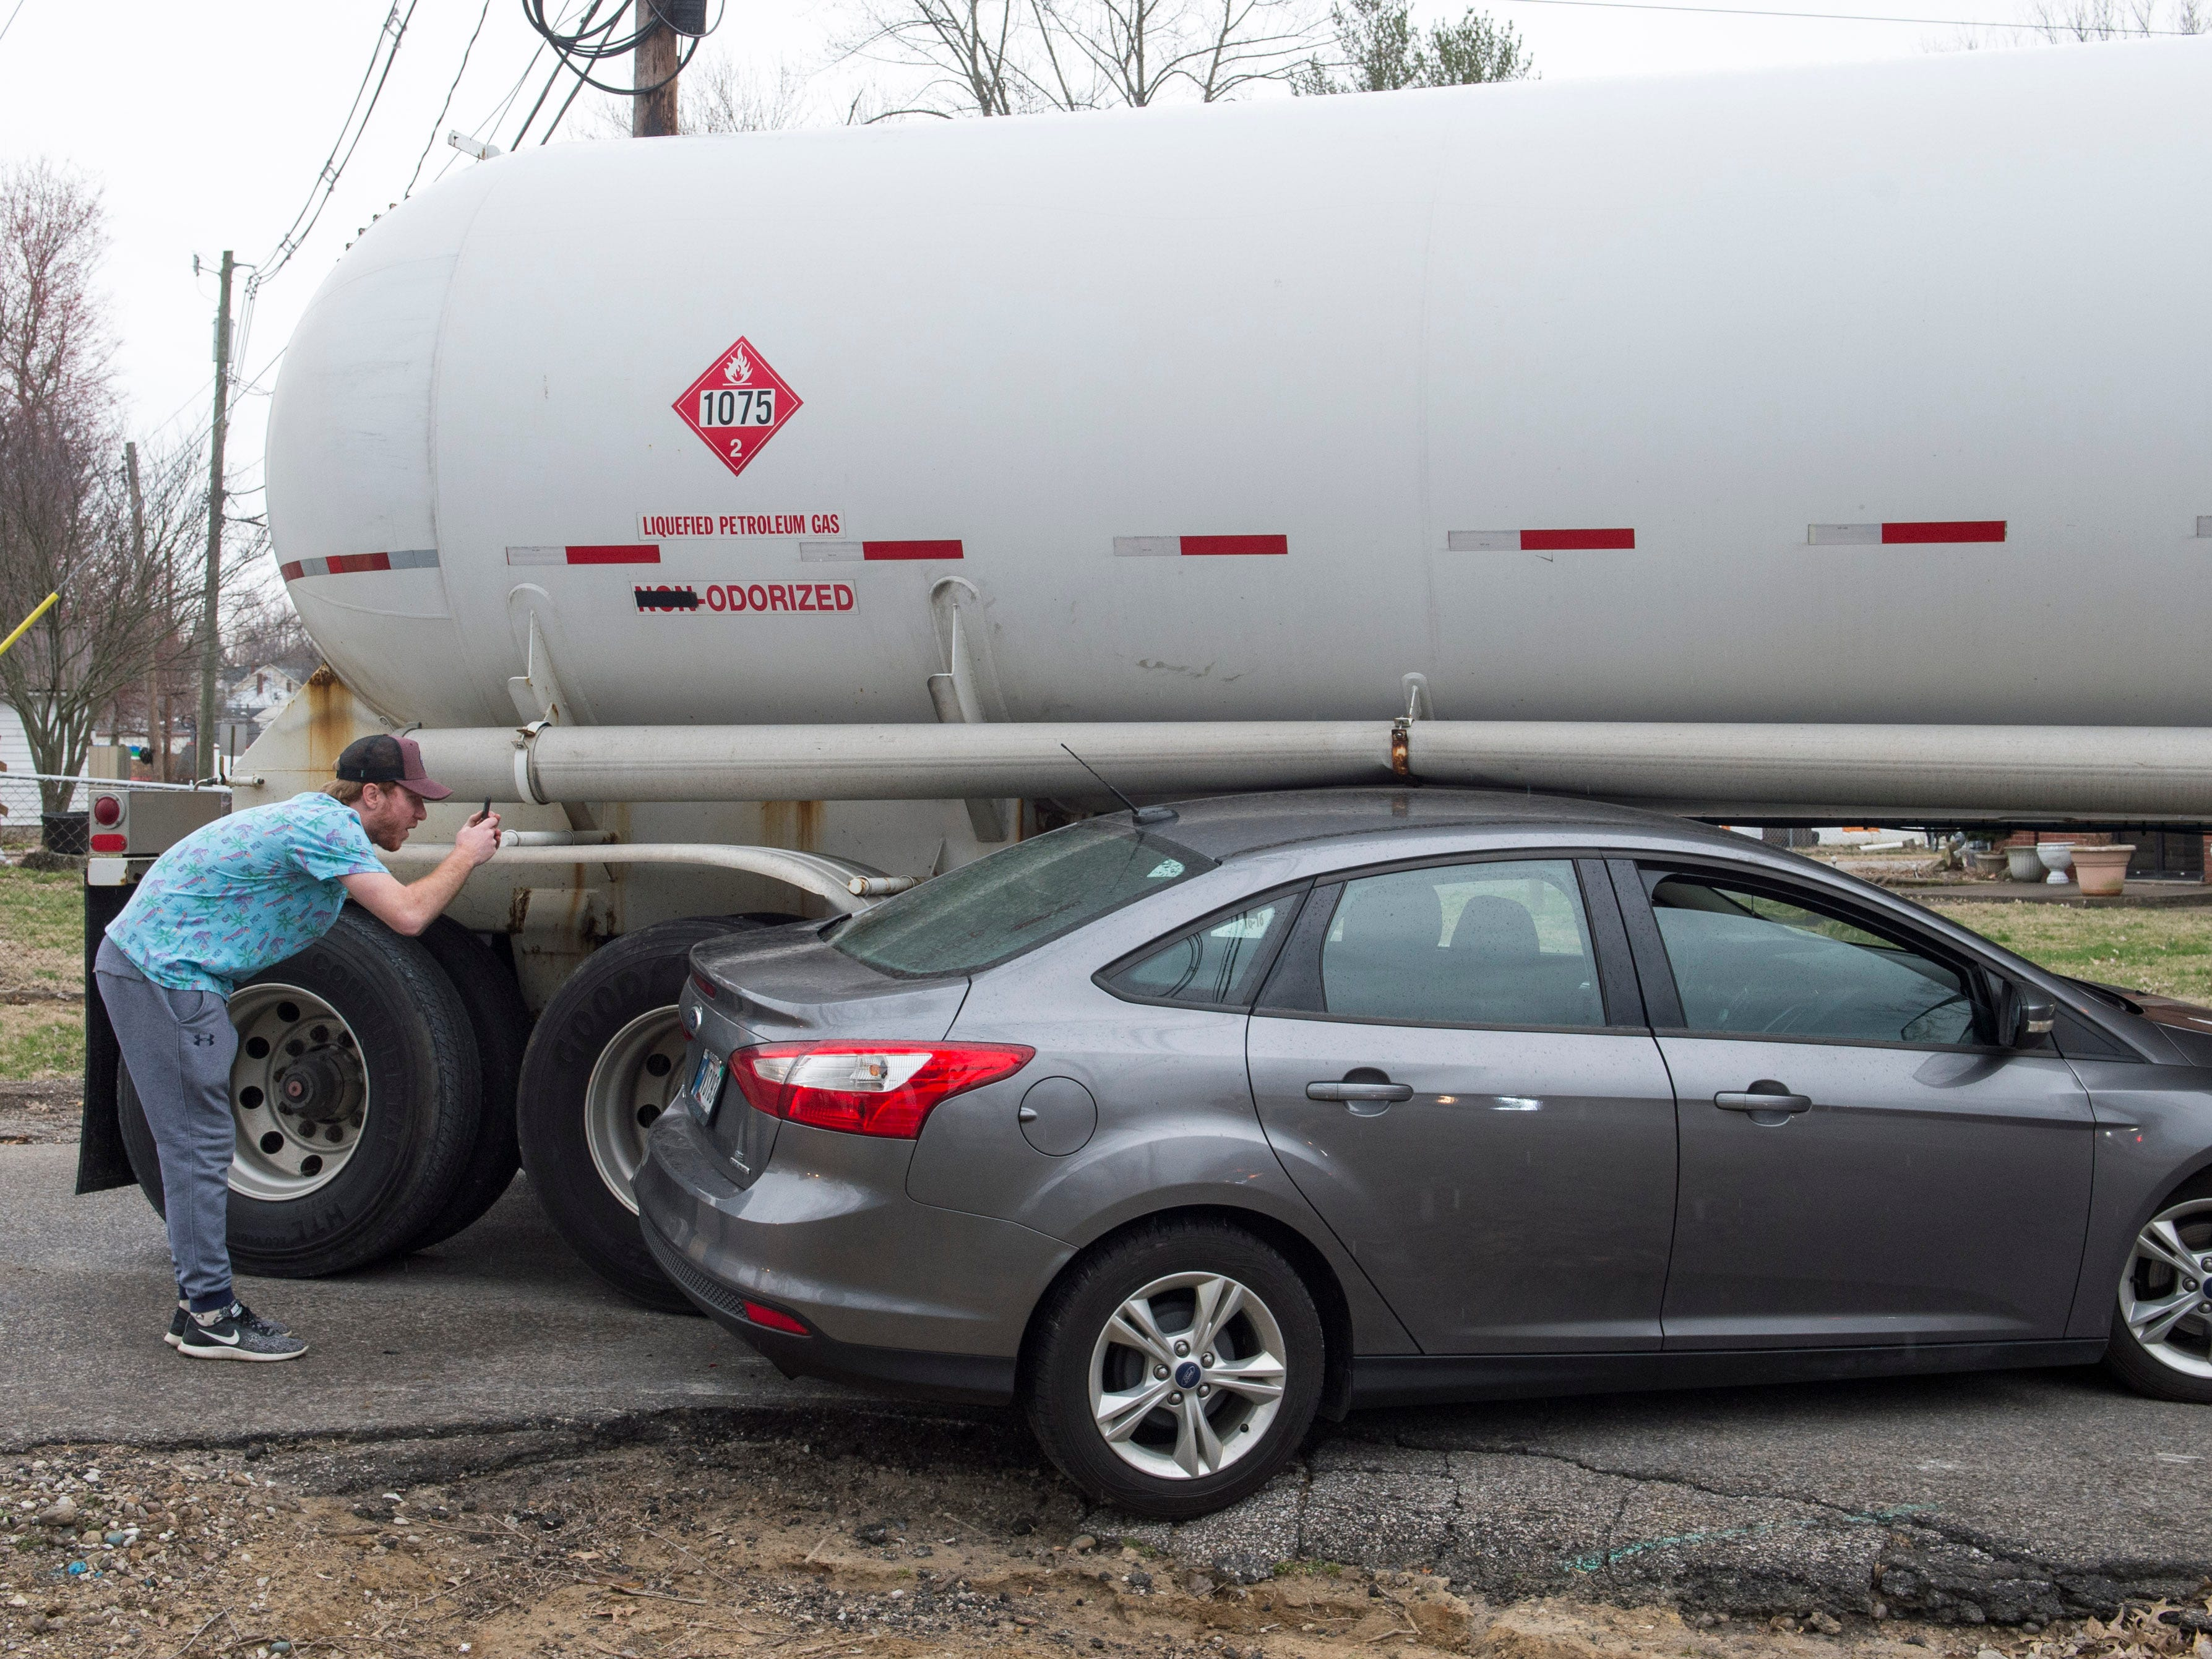 The husband of the driver involved in an accident with a tanker truck at the intersection of Woods Ave. and Houge Rd. takes photos of the damage Wednesday, March 20, 2019. The truck was empty and no one was injured.